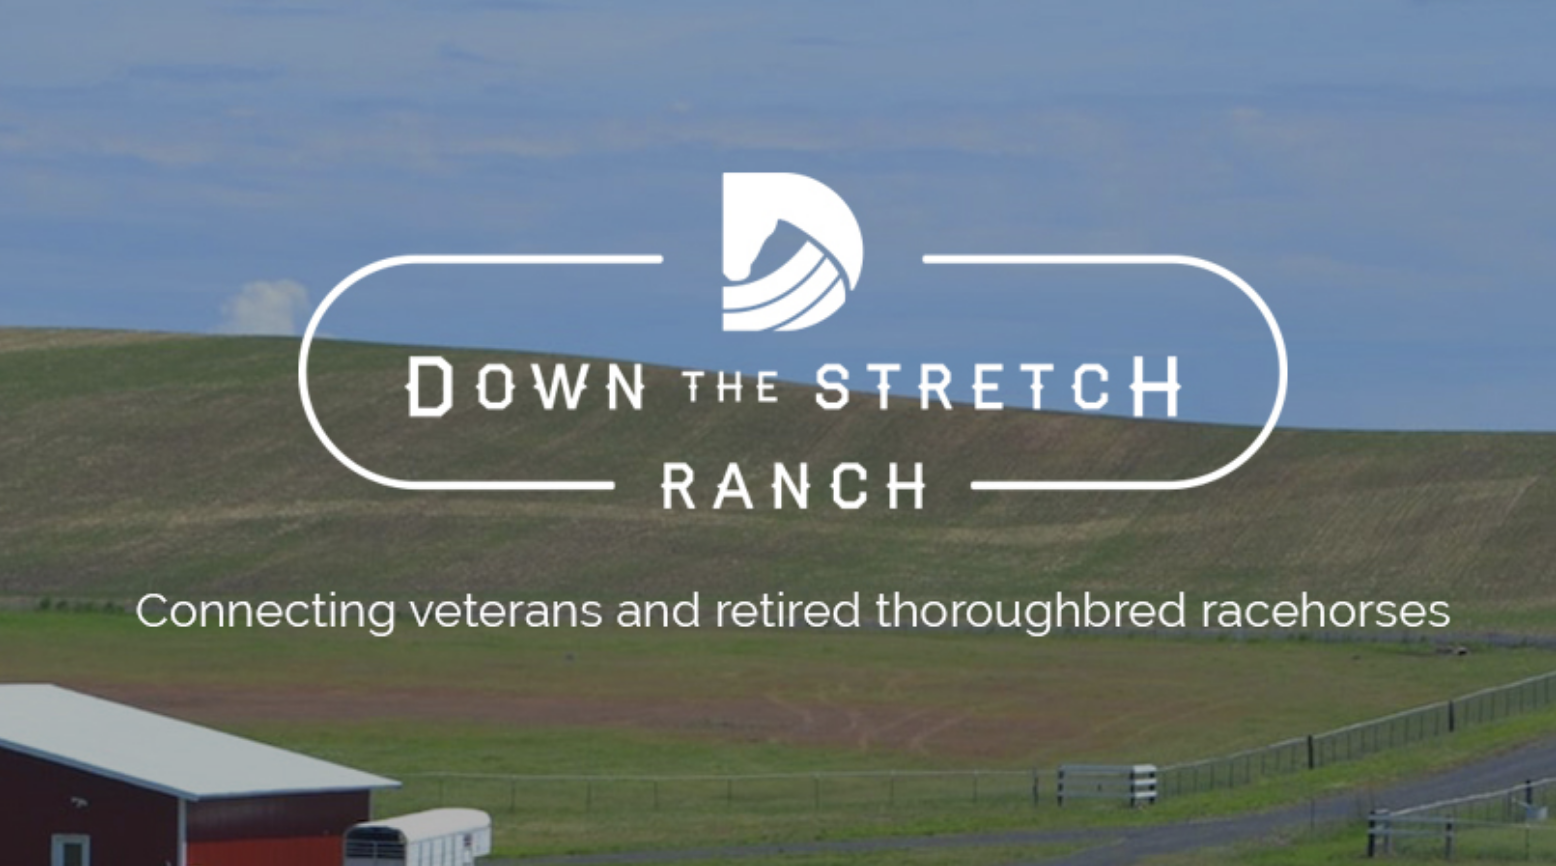 Down the Stretch Ranch